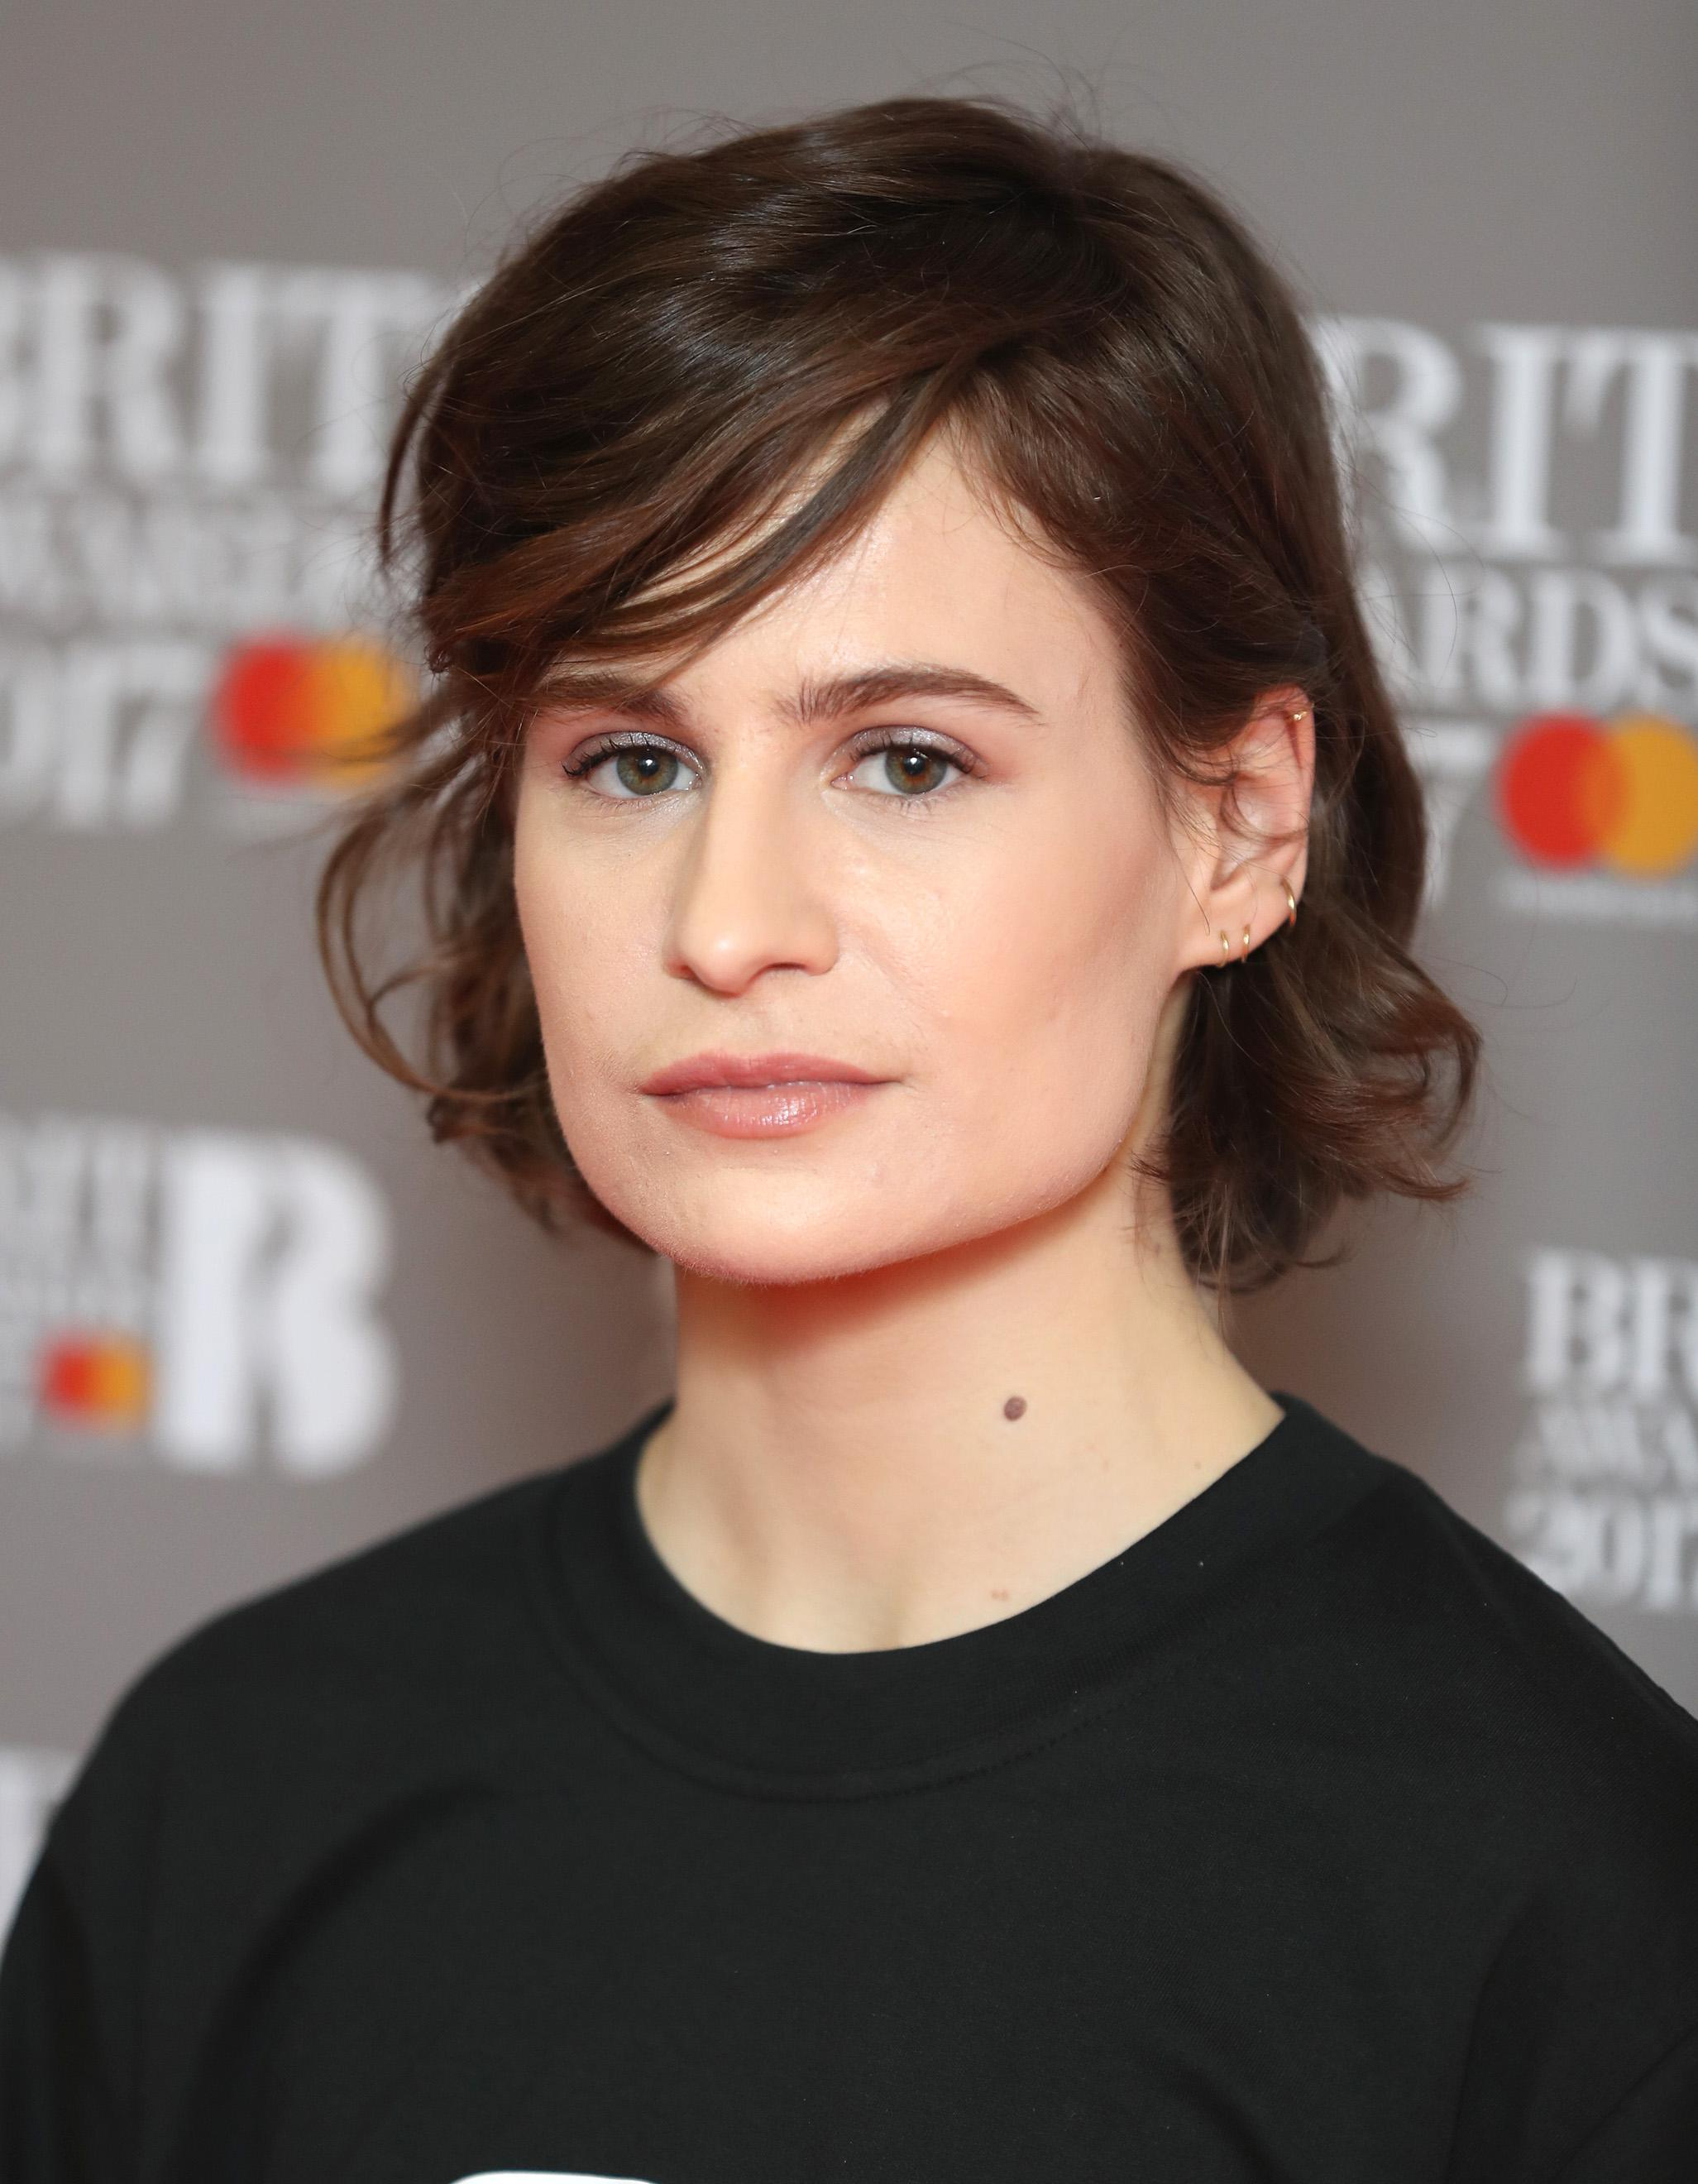 Christine And The Queens Change Radicalement De Coupe De Cheveux Elle